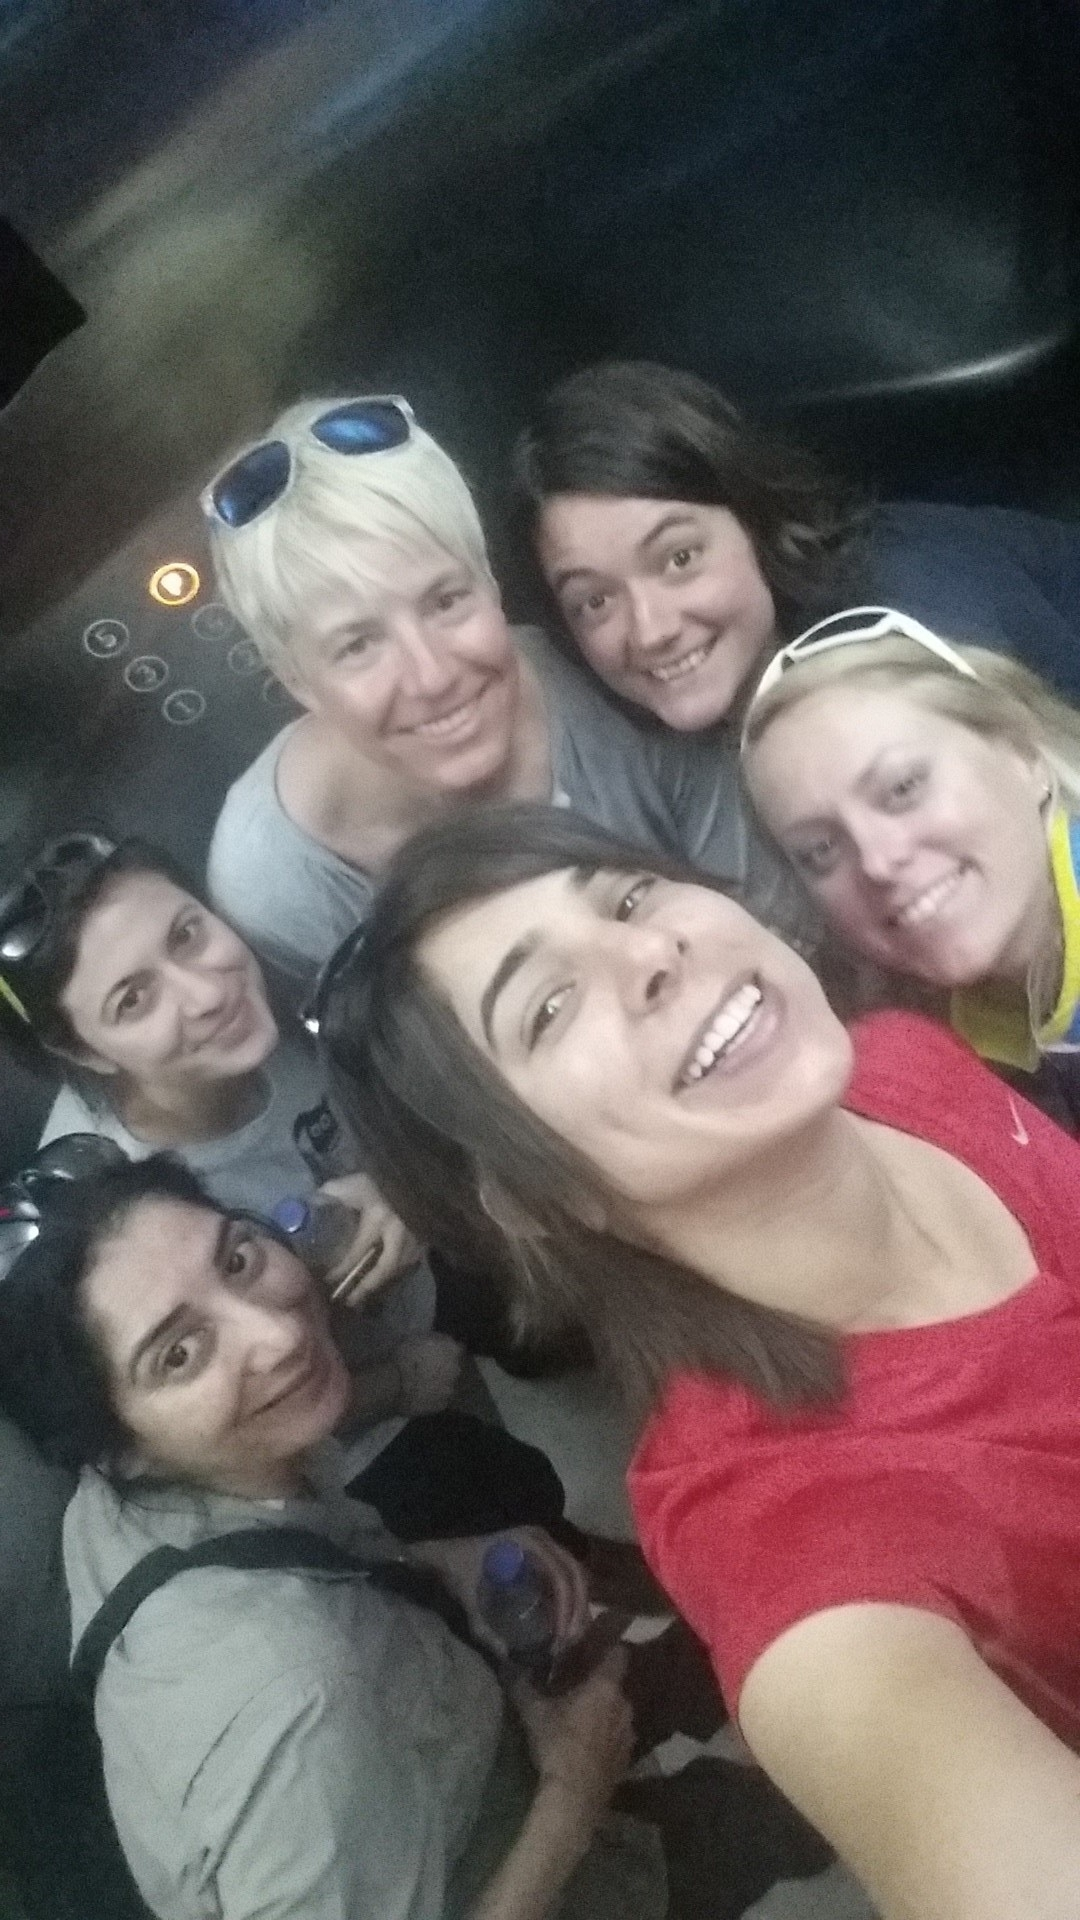 Partial team reunion in the lift of a Muscat Hotel (Misba UK, Steph Cyprus, Natasa Slovenia, Susan France, Ida Sweden and Lamees Kuwait).